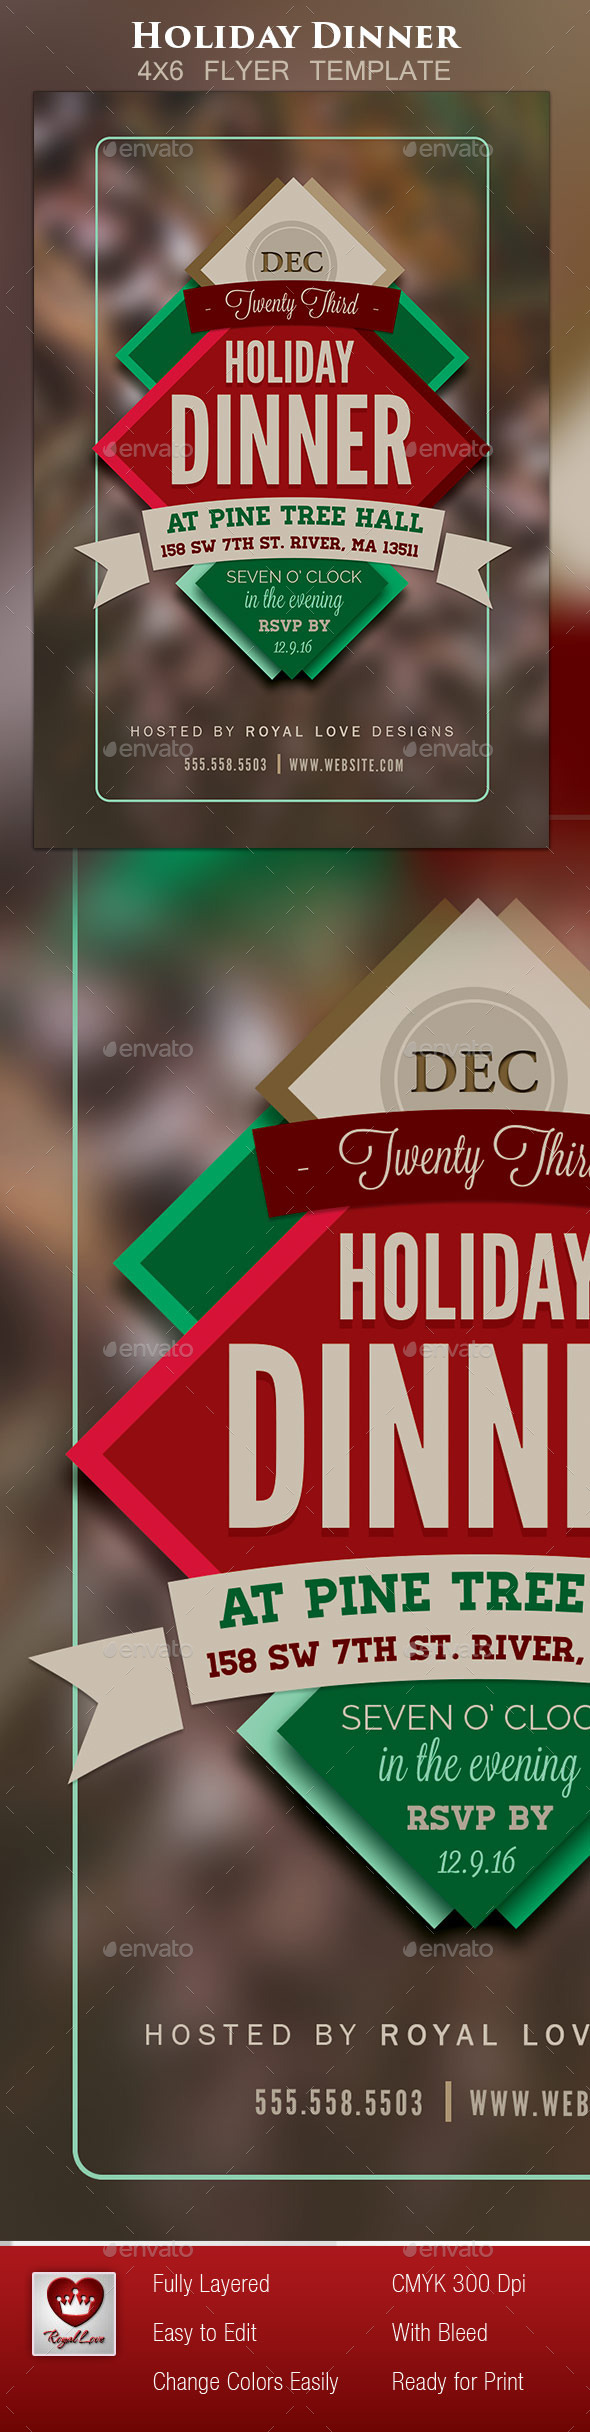 Holiday Dinner Flyer II - Holidays Events